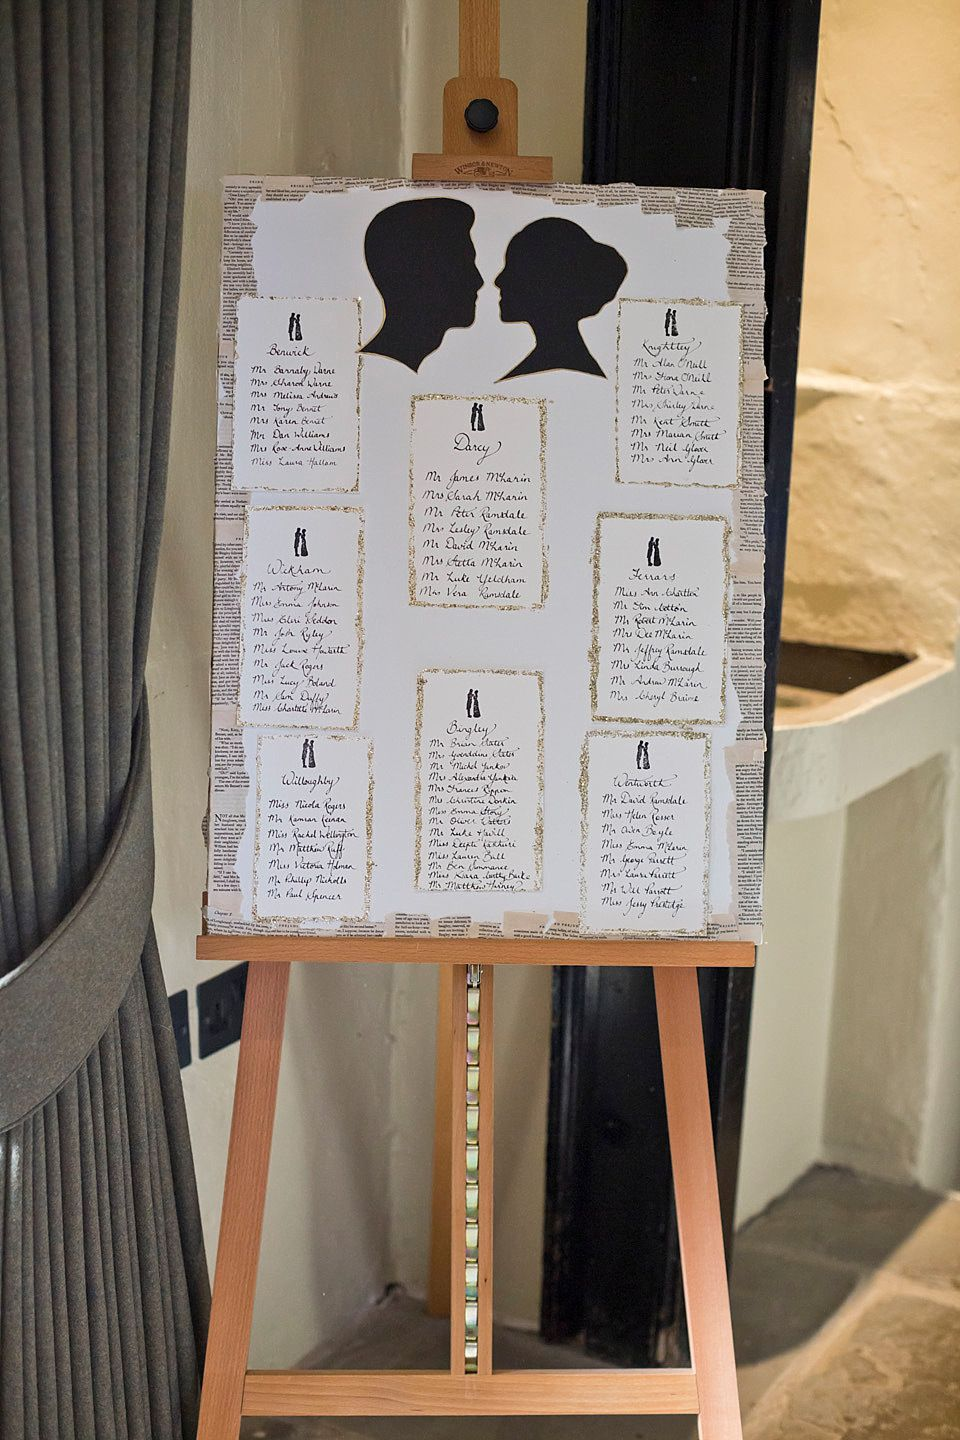 A Jane Austen and Literary Inspired Wedding | Table plans, Jane ...